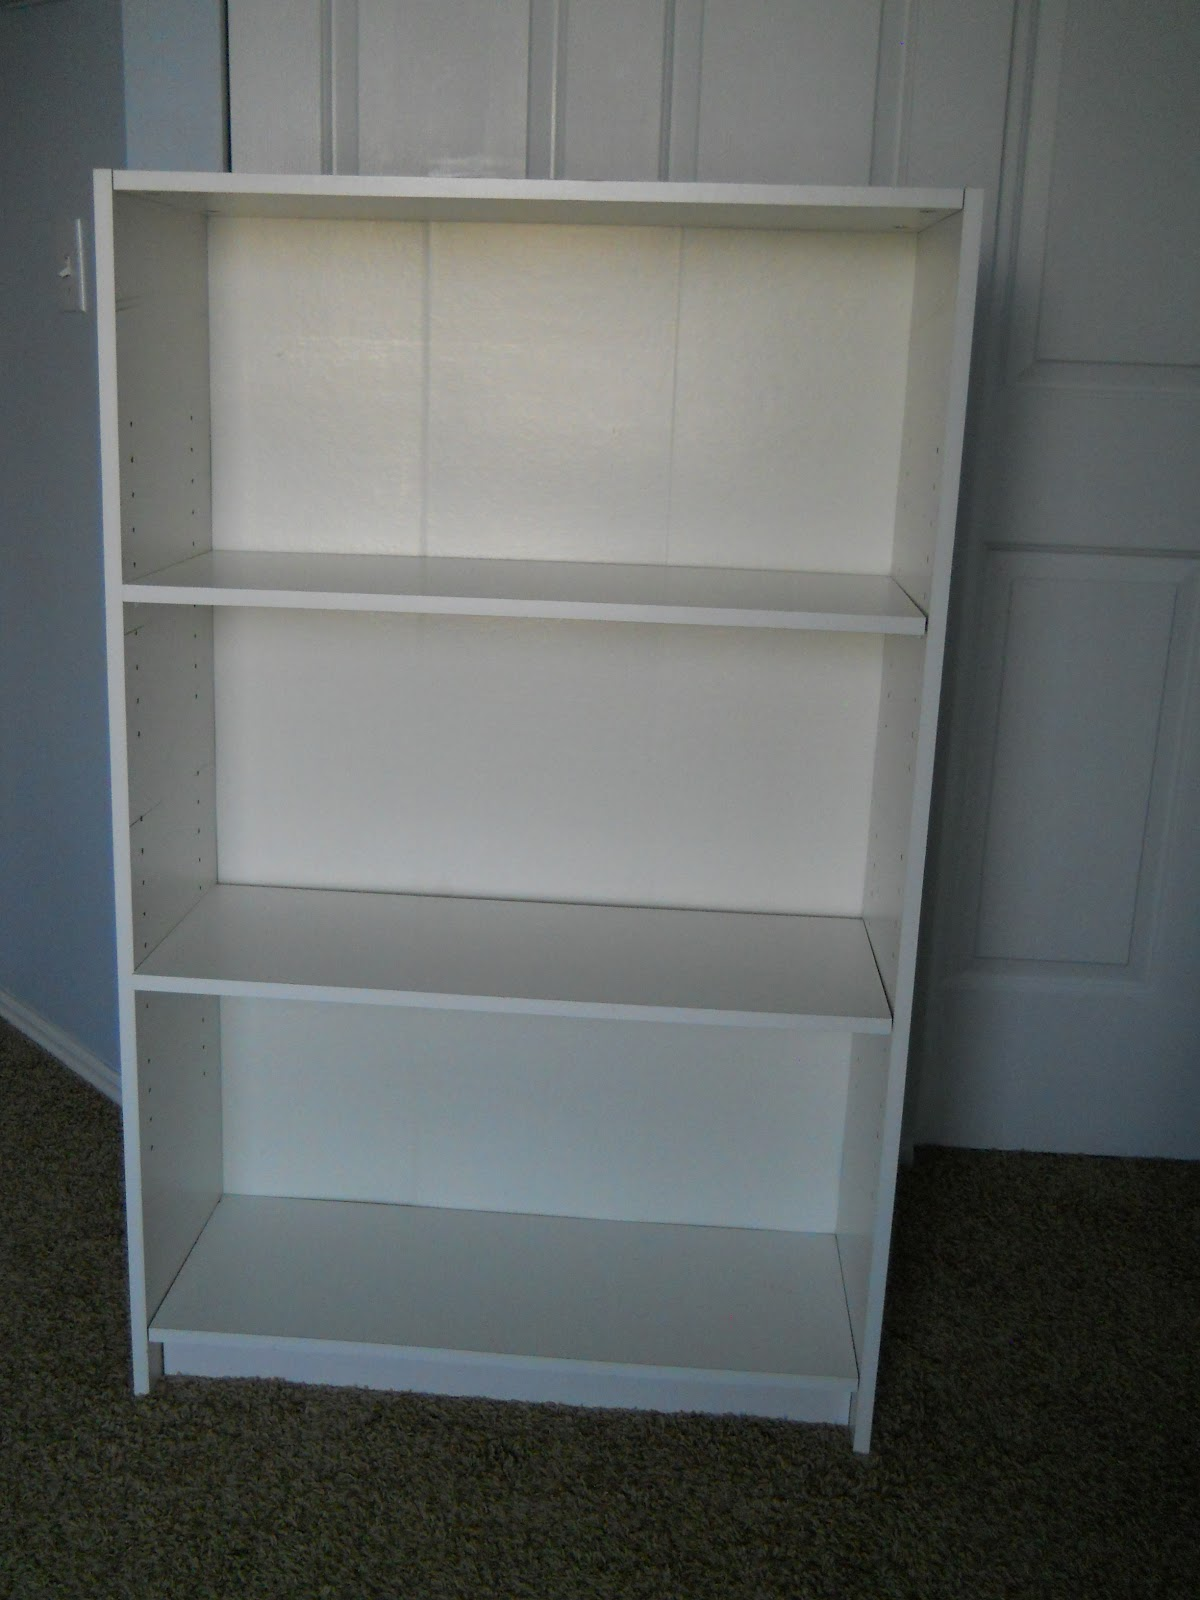 I Have Had This White Laminate Book Case For Years Think Bought It While Was In My Junior Year Of College